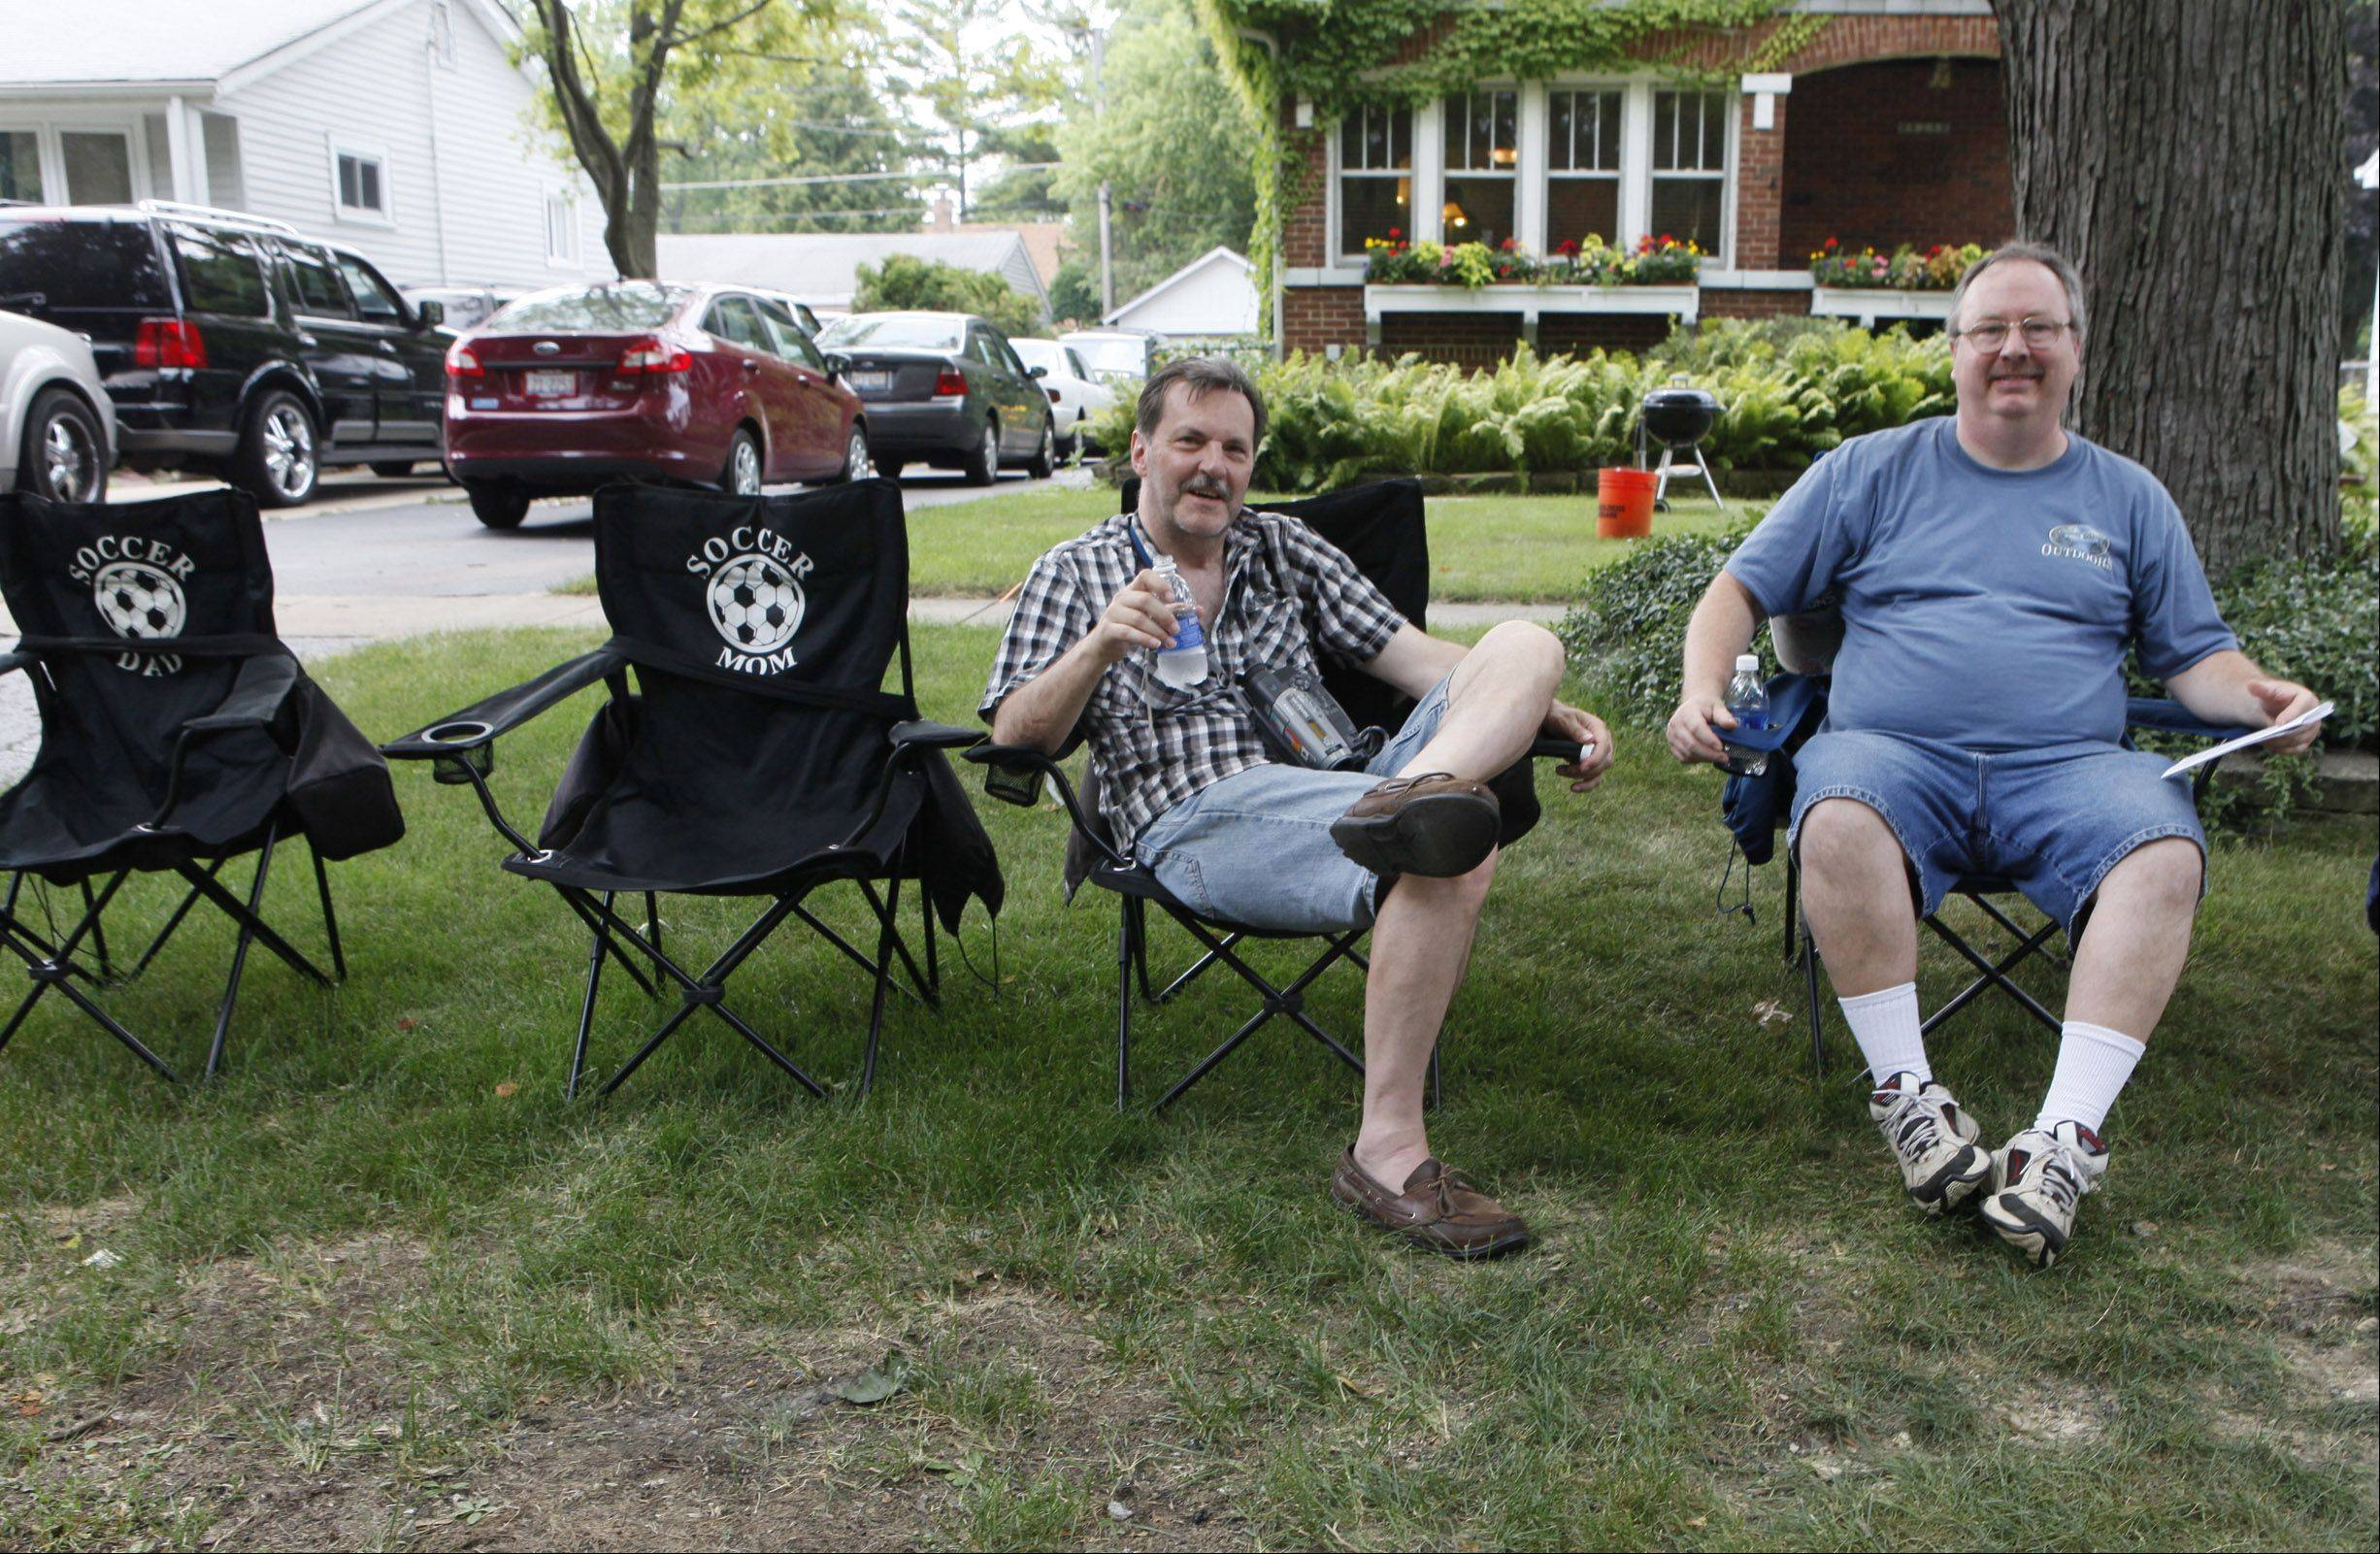 Still sitting after West Chicago's Railroad Days parade passed by Sunday, residents Rich Kassanits and Mark Patenaude relax in the shade on a hot summer day.